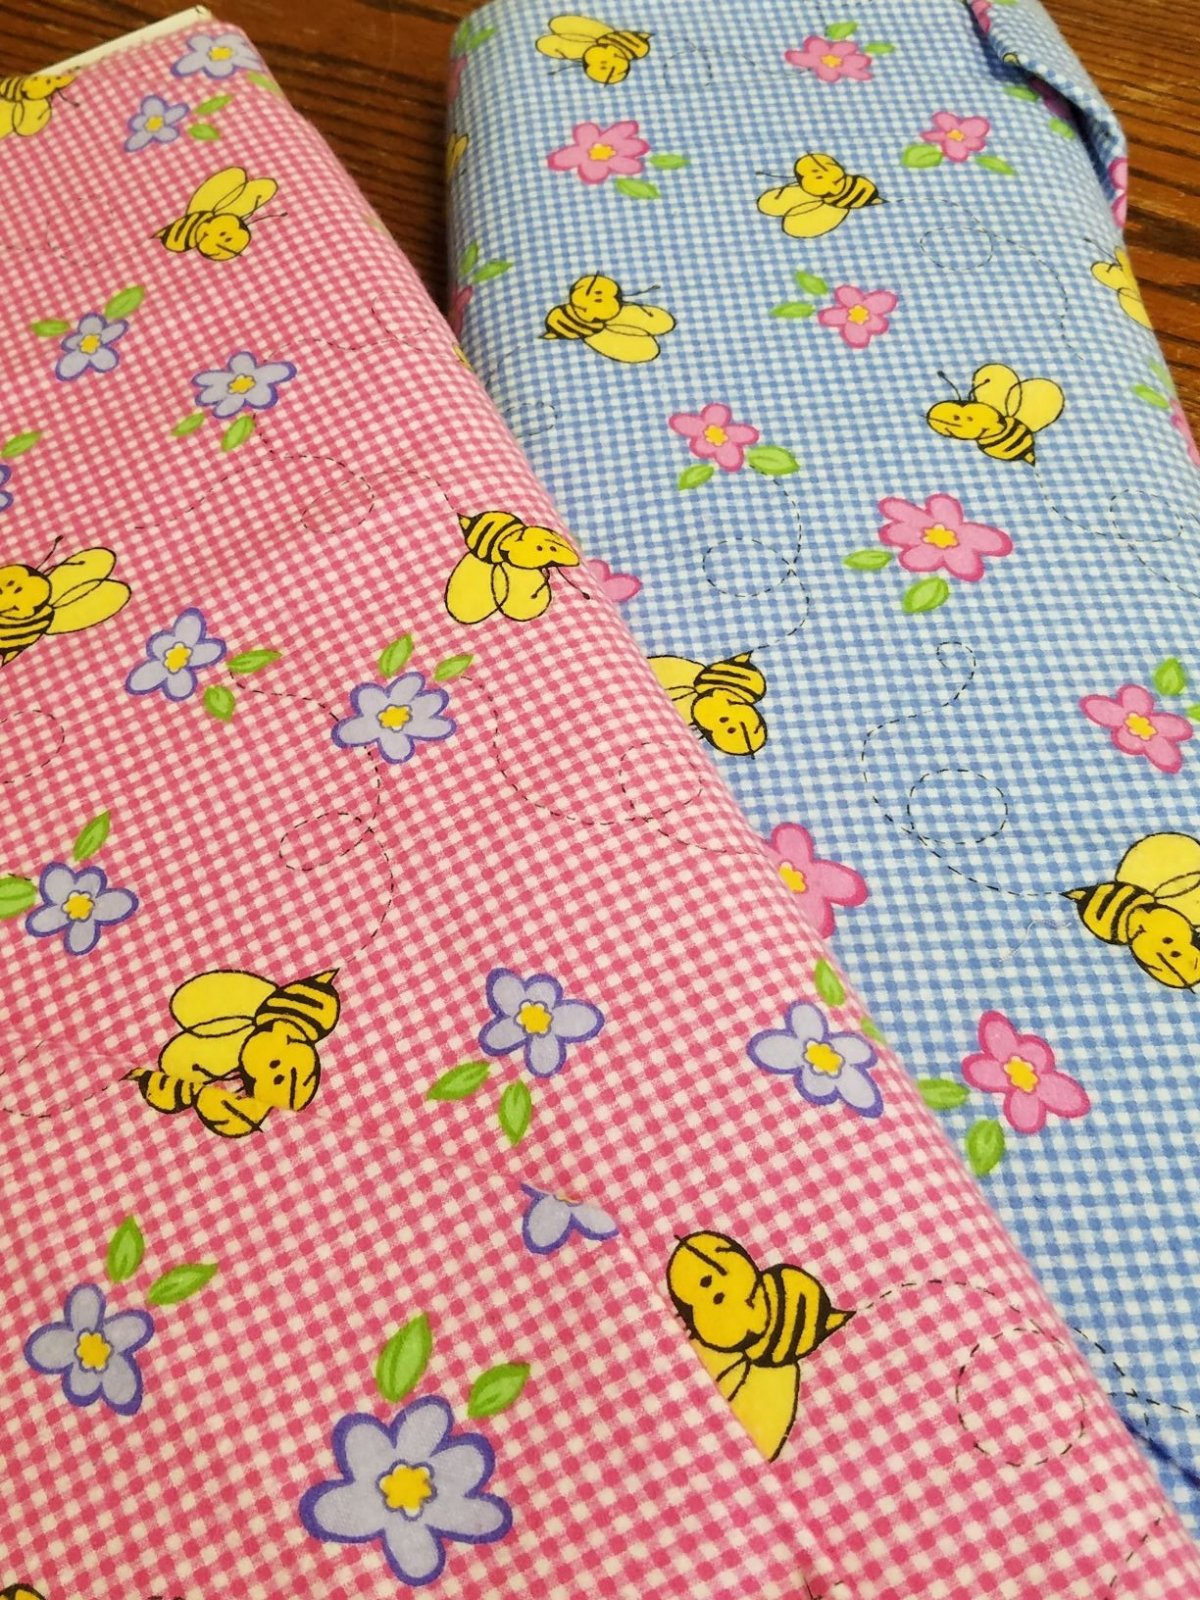 Bees on Blue or Pink Check Flannel